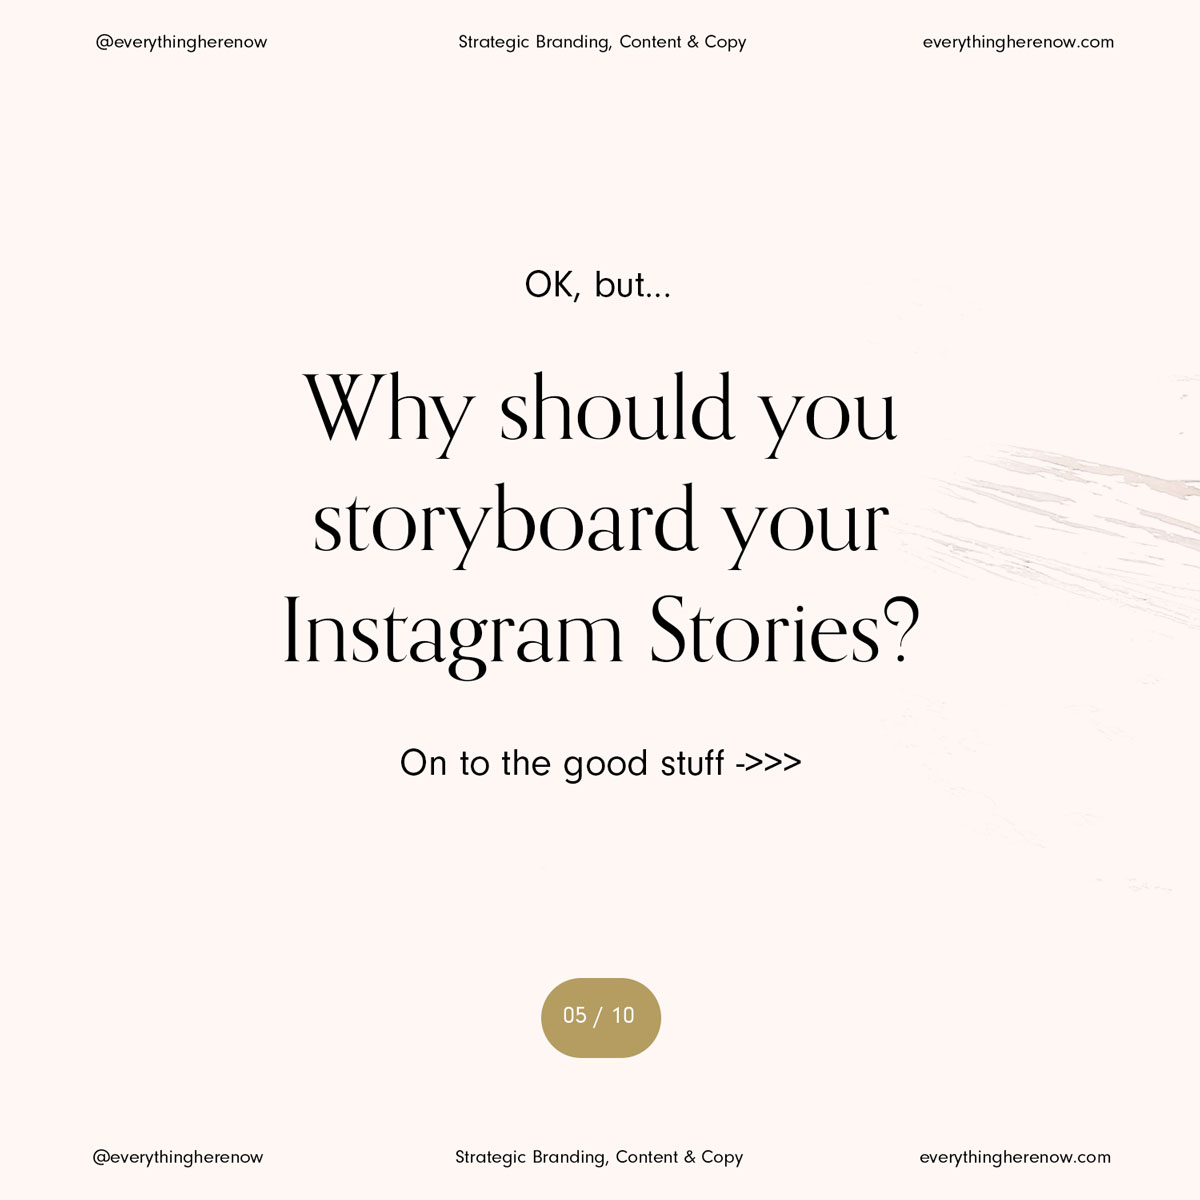 storyboarding-for-instagram-stories-what-it-is-and-when-to-use-it-by-everything-here-now-5